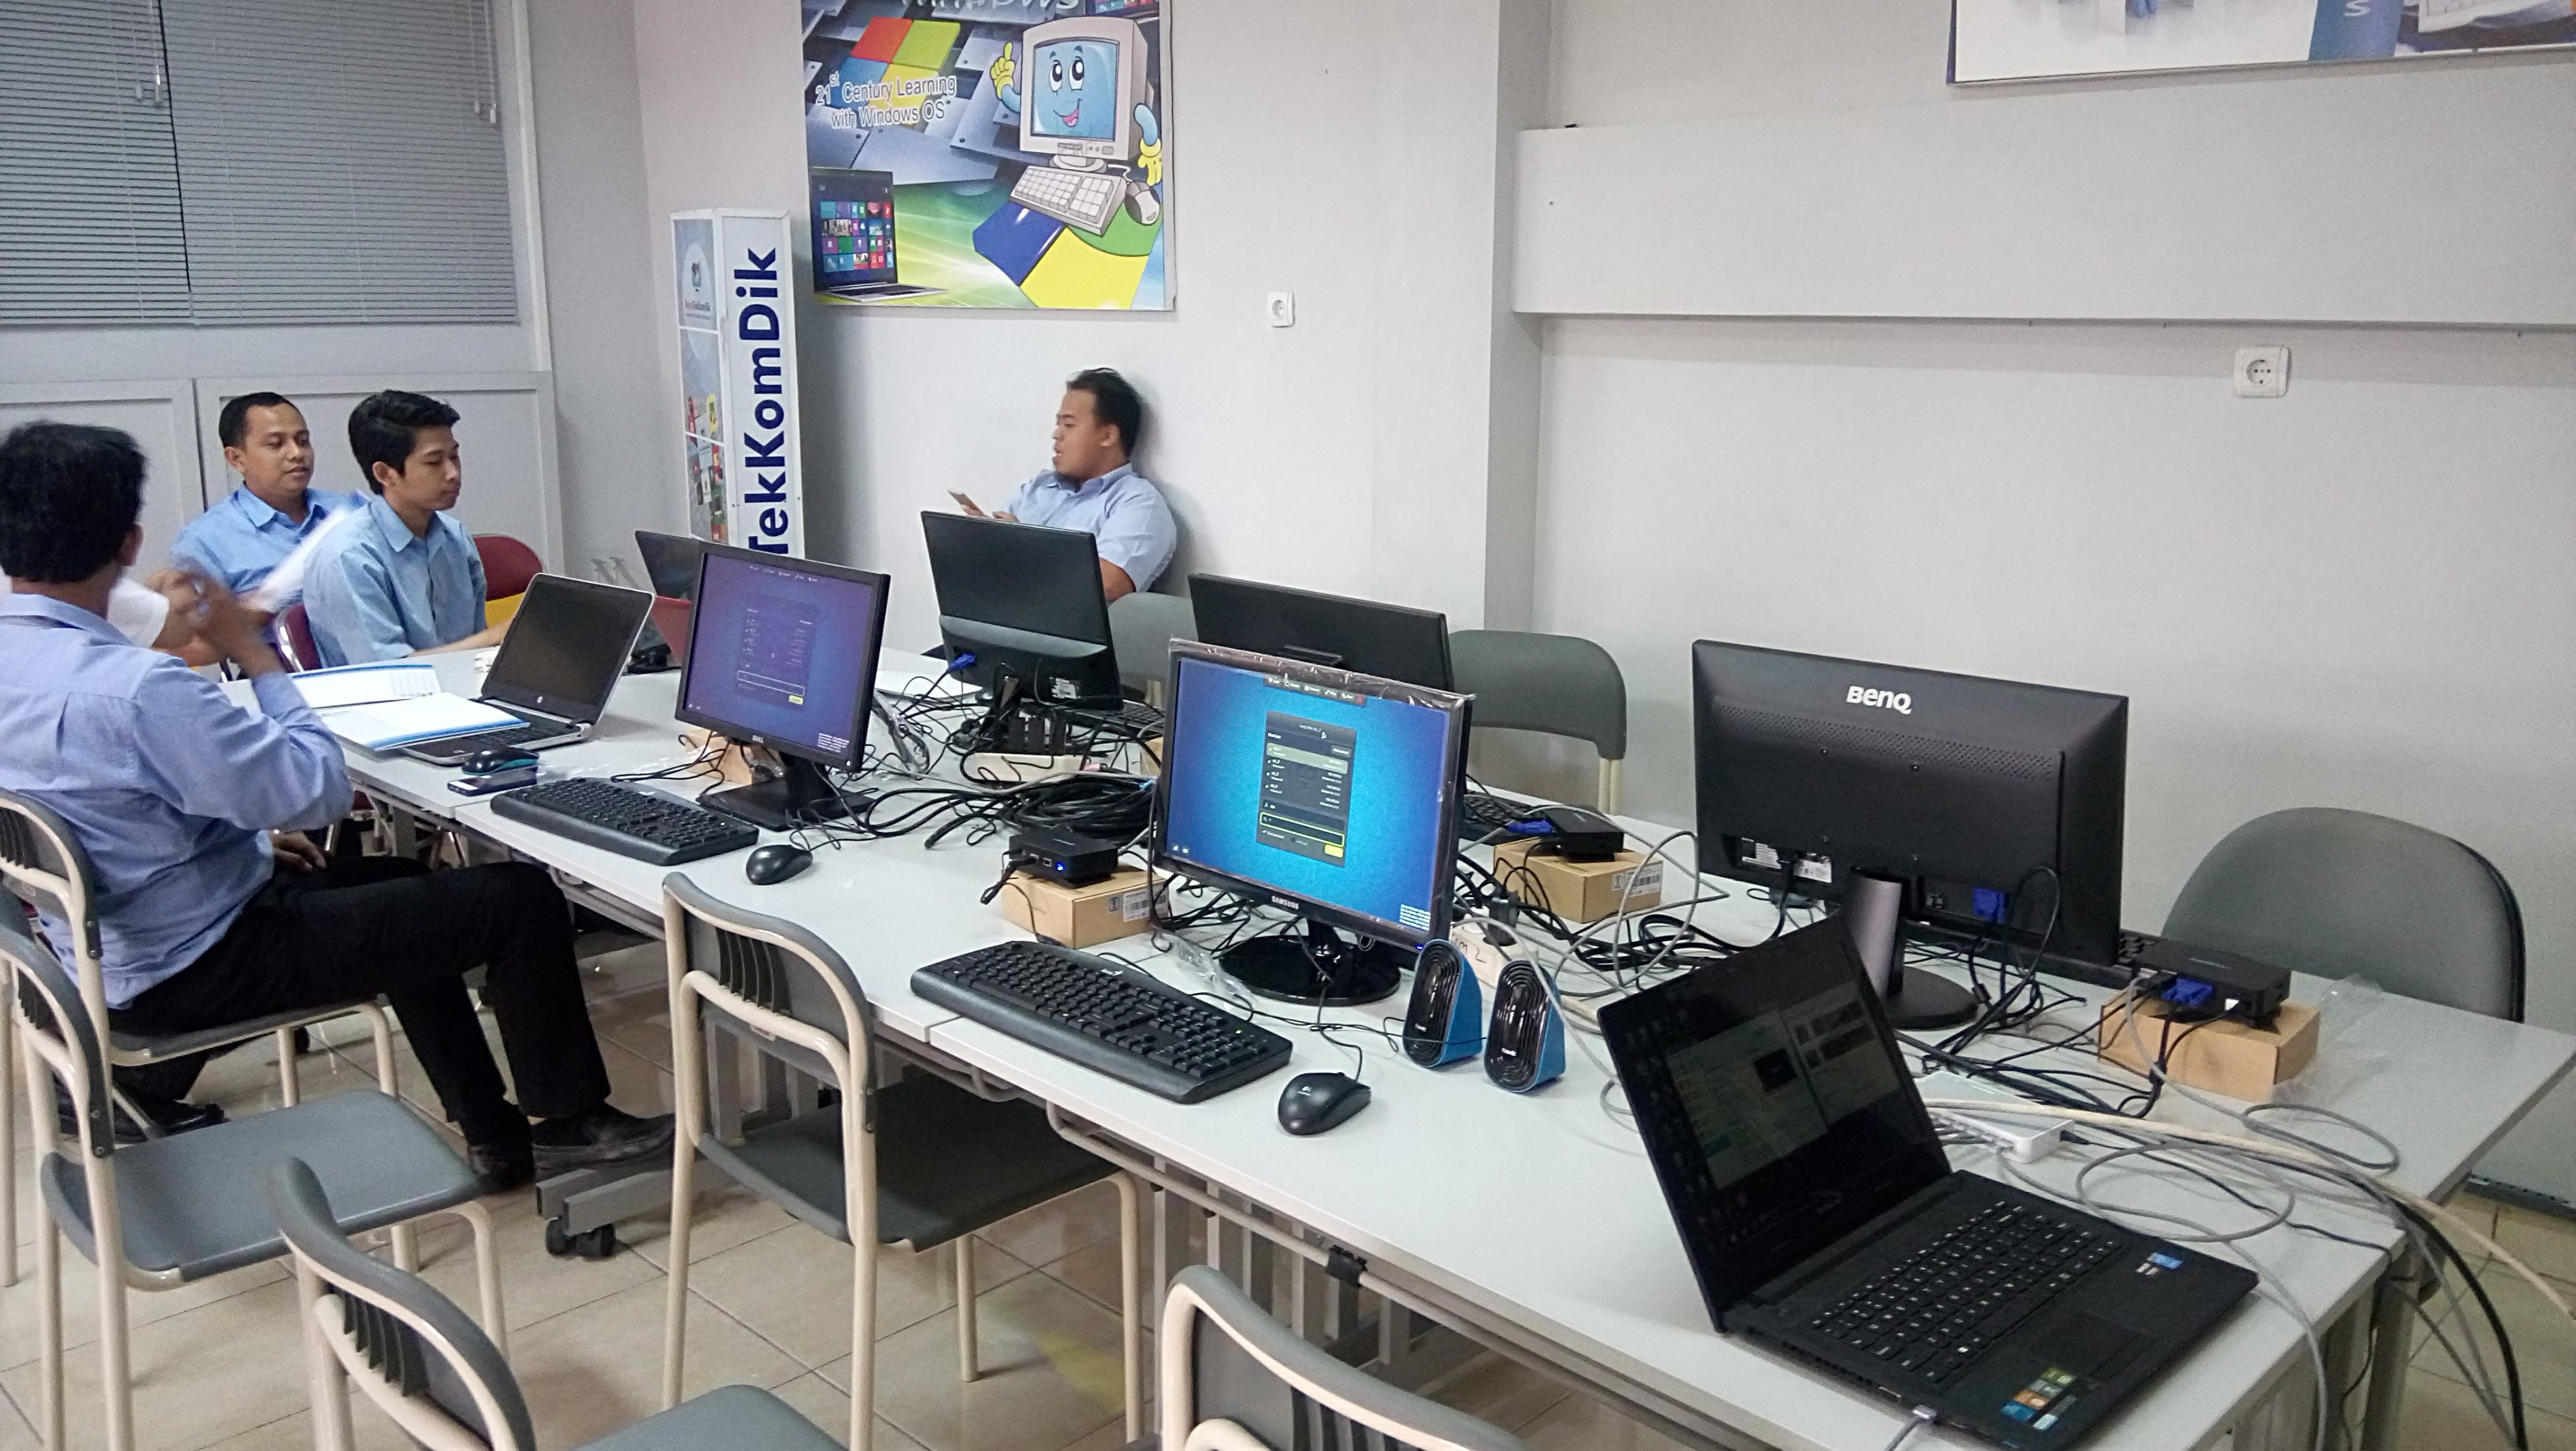 vcloudpoint-in-indonesia-1.jpg